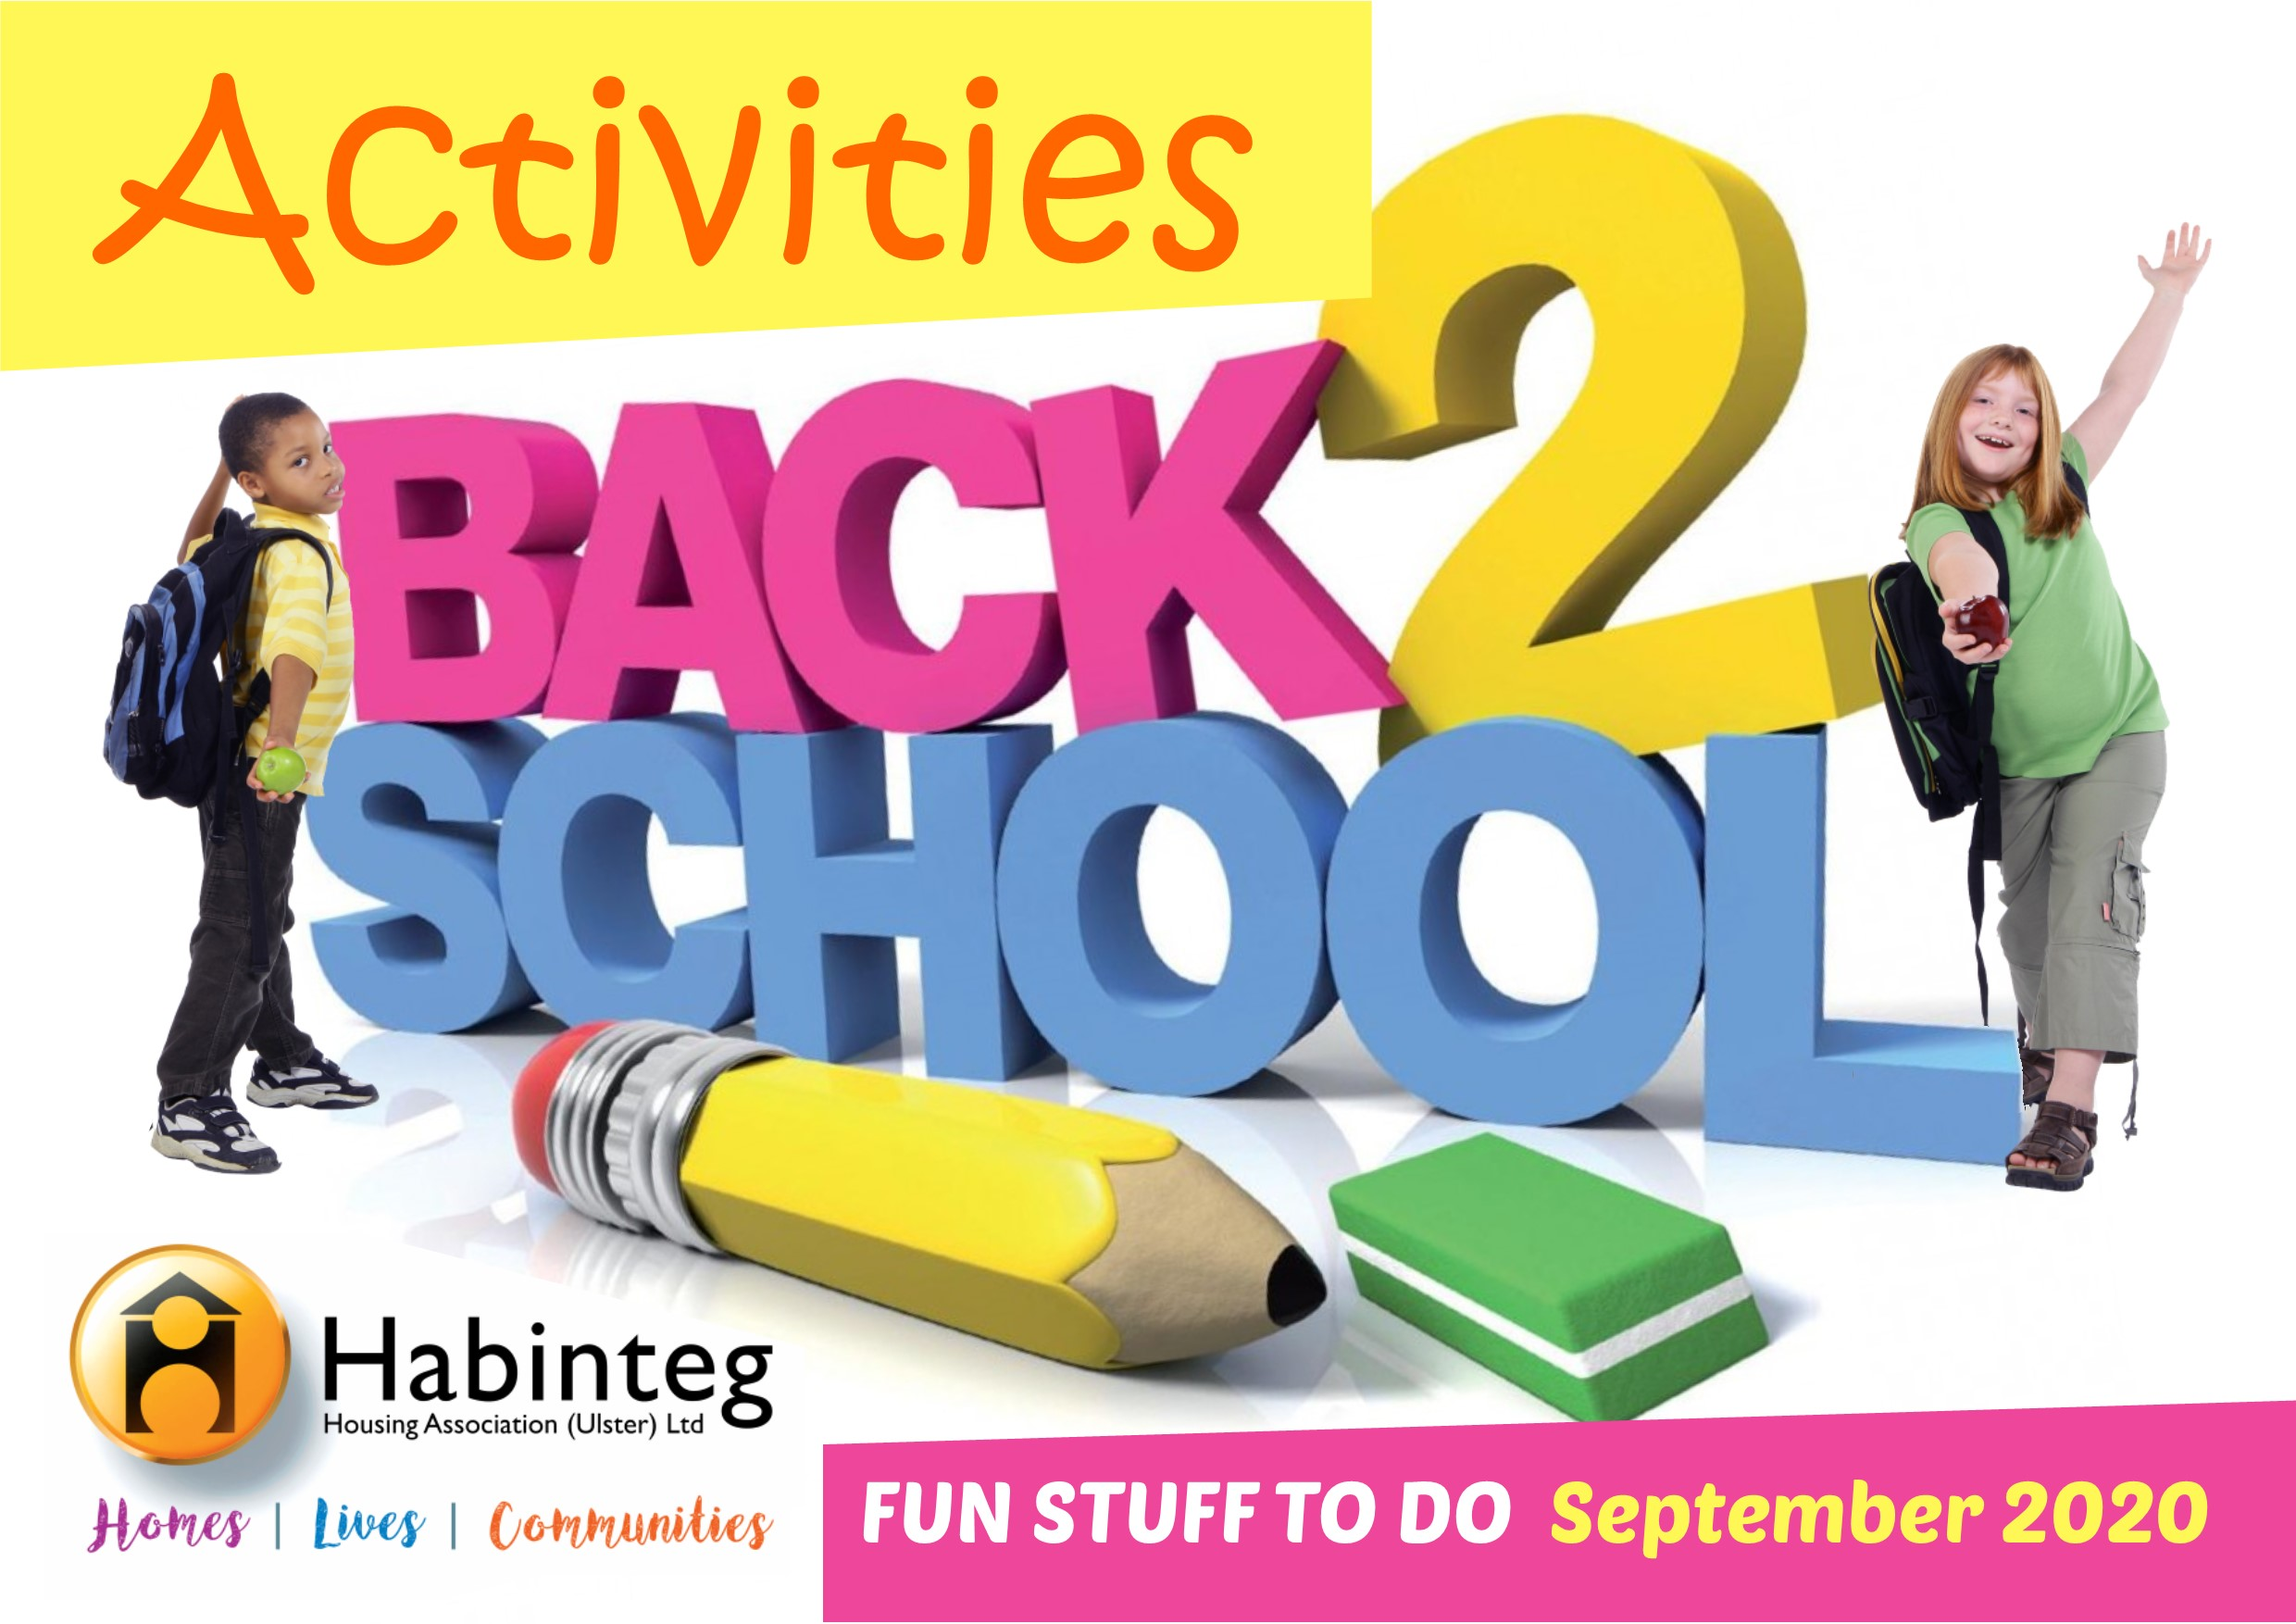 Fun Activities for September 2020